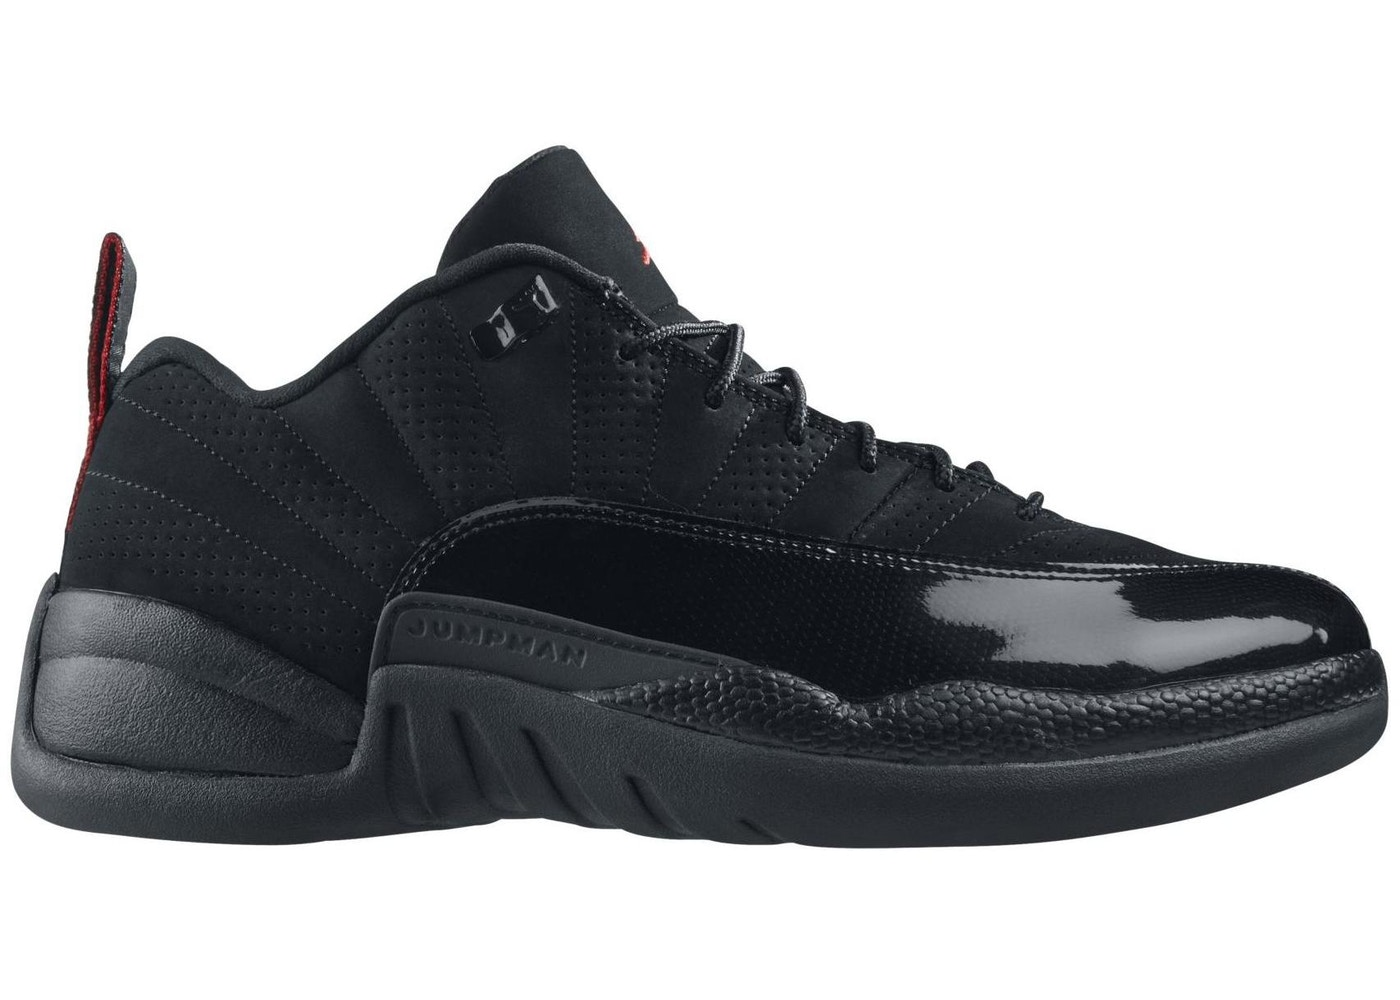 lowest price 5ad12 2f090 Jordan 12 Retro Low Black Patent